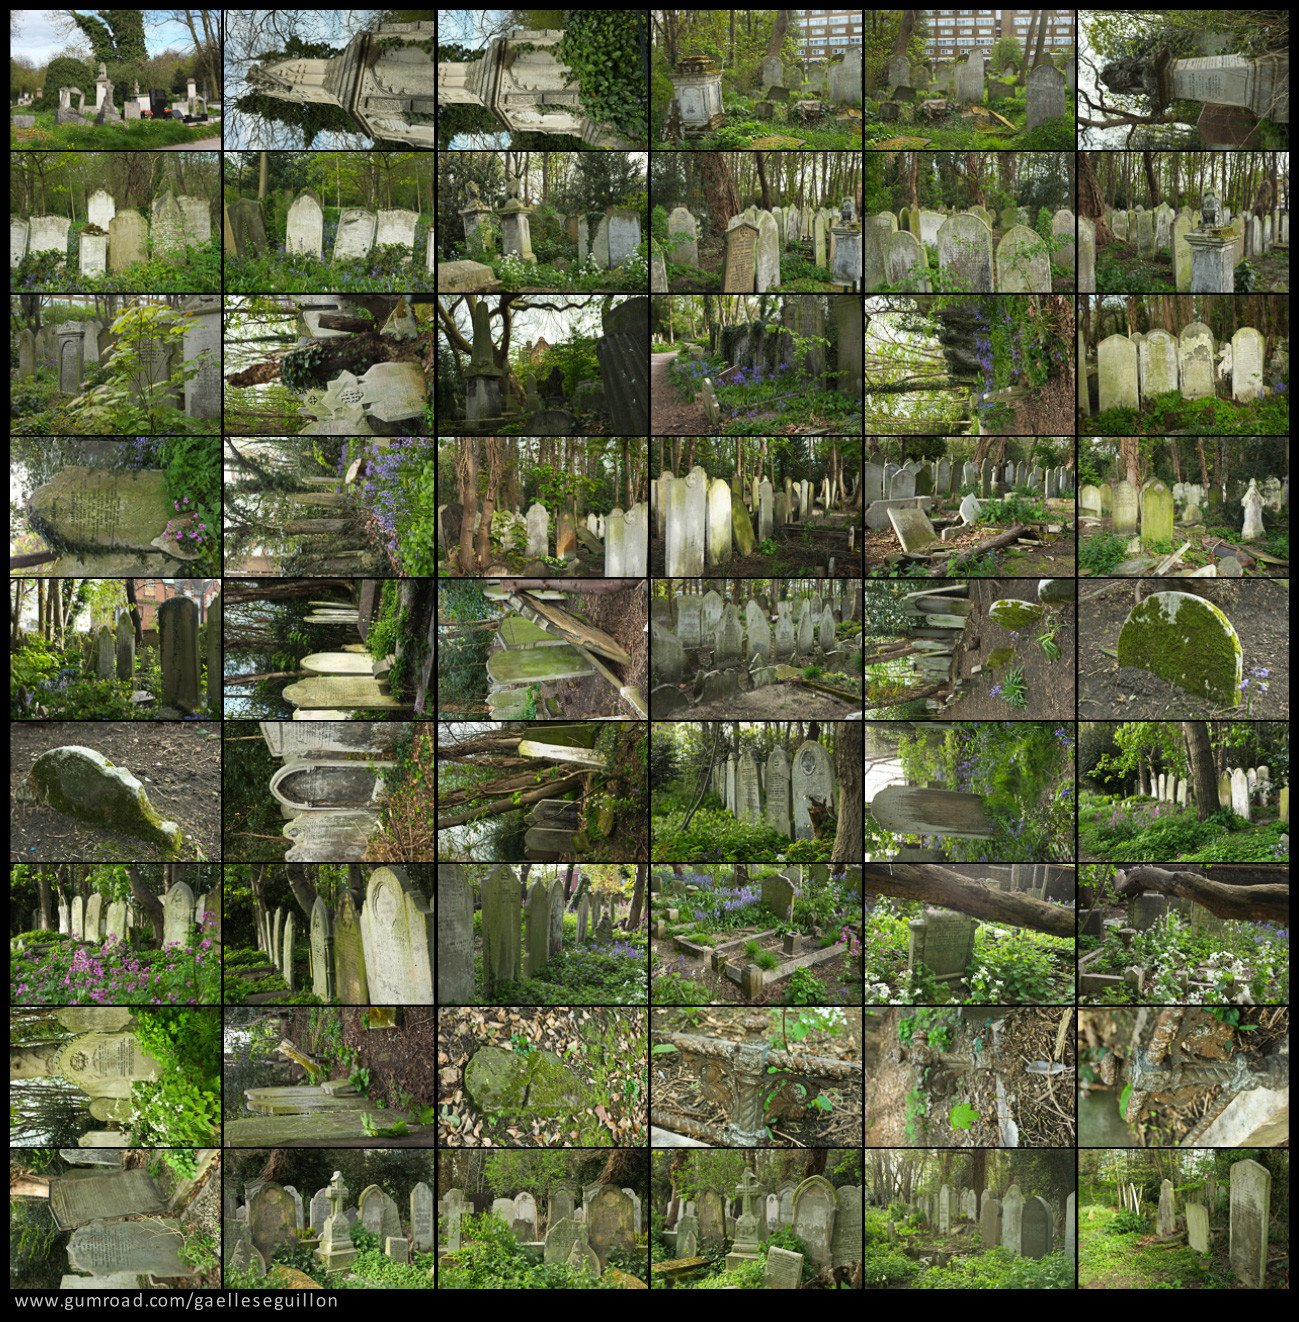 Overgrown cemetery preview.jpg 1